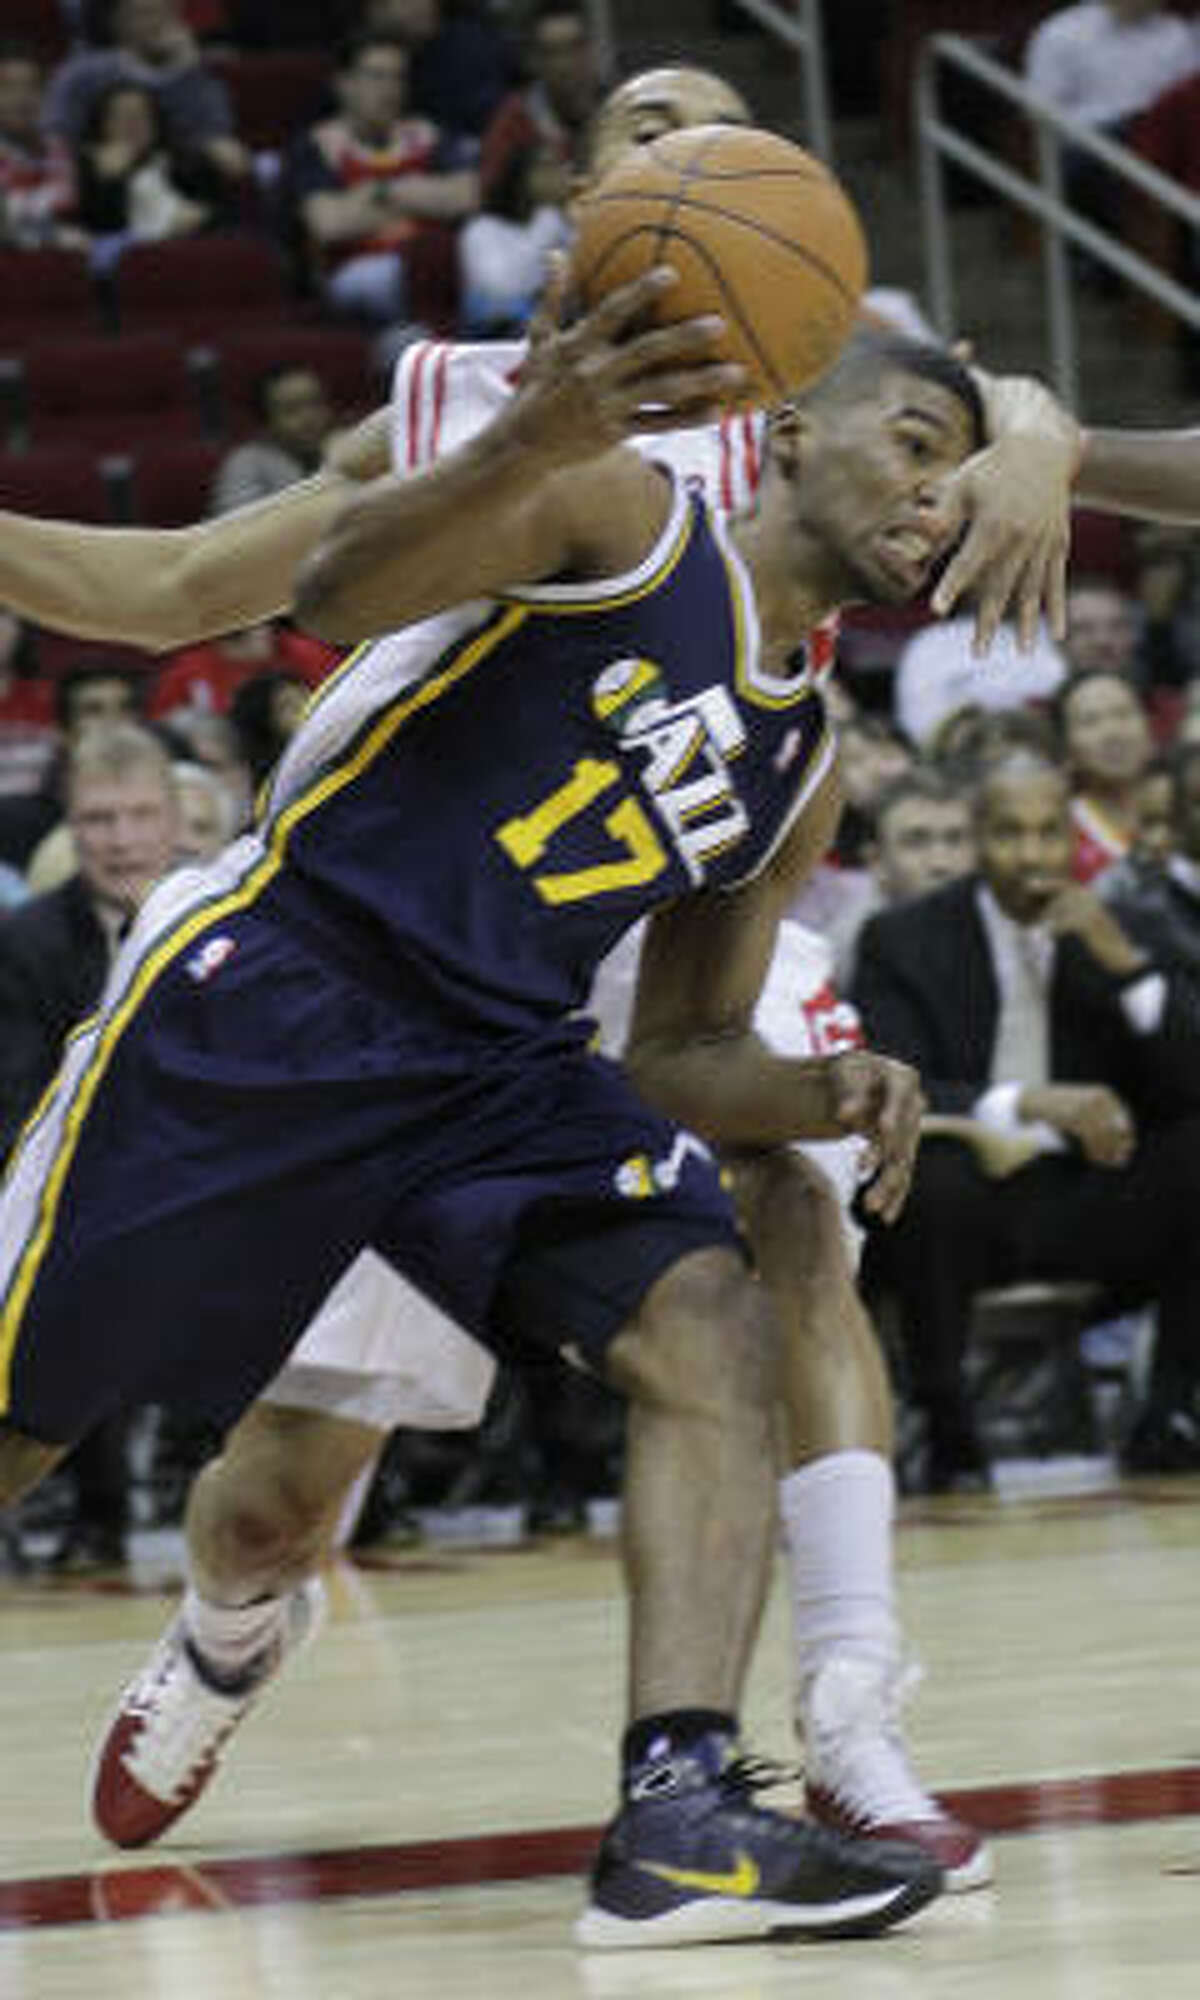 Jazz guard Ronnie Price (17) is fouled by Rockets guard Ishmael Smith.